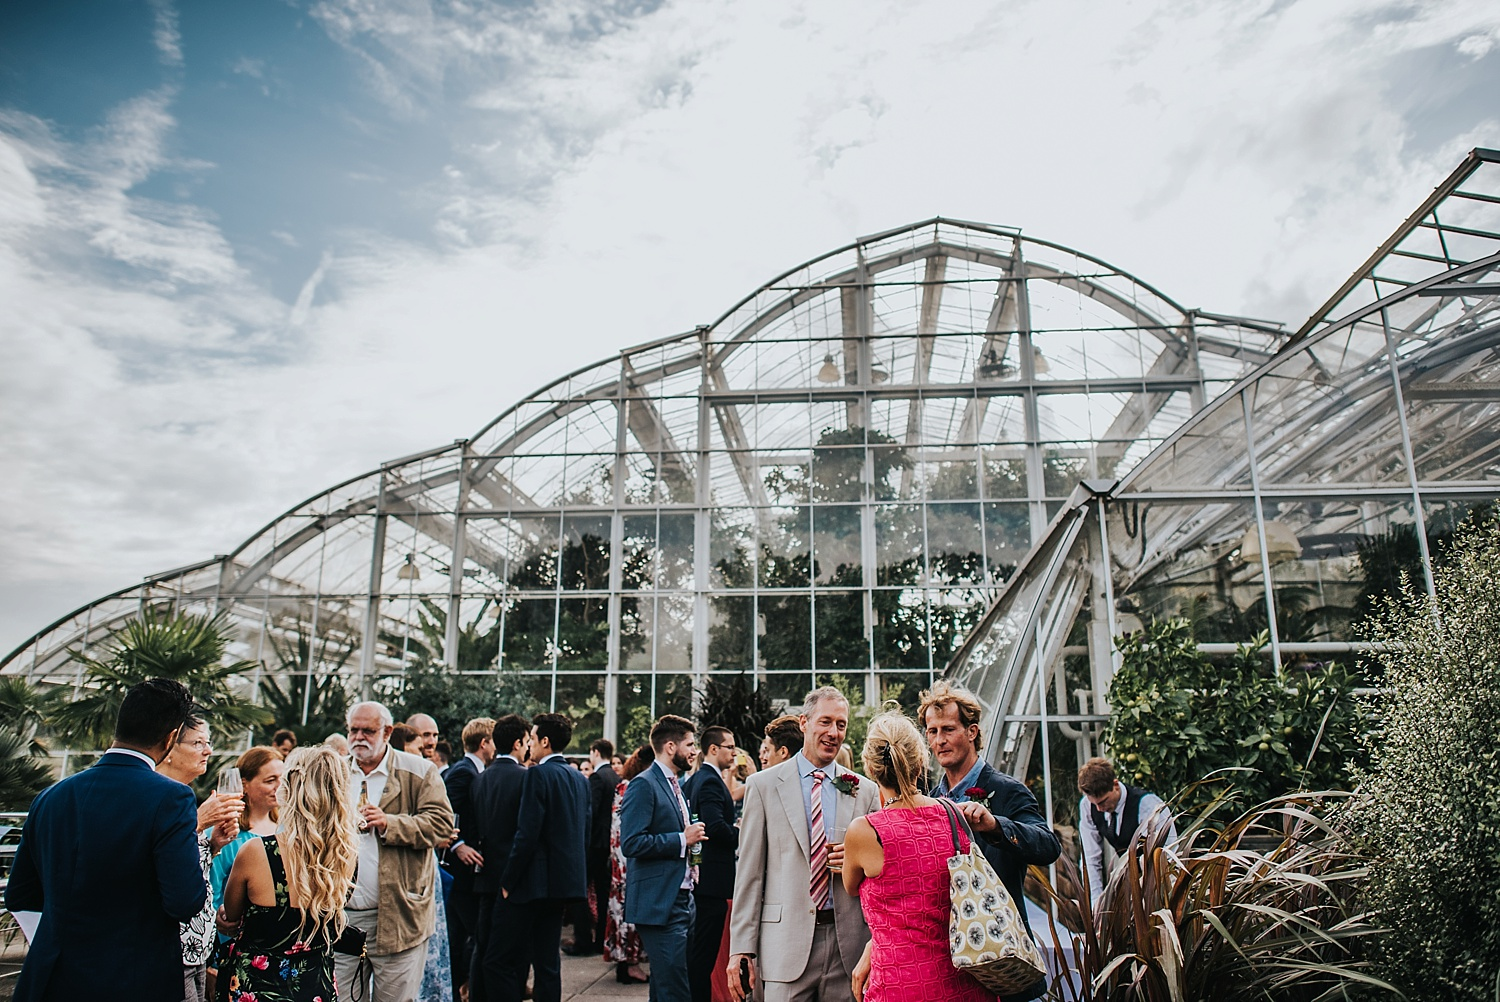 RHS Wisley Glasshouse with guests